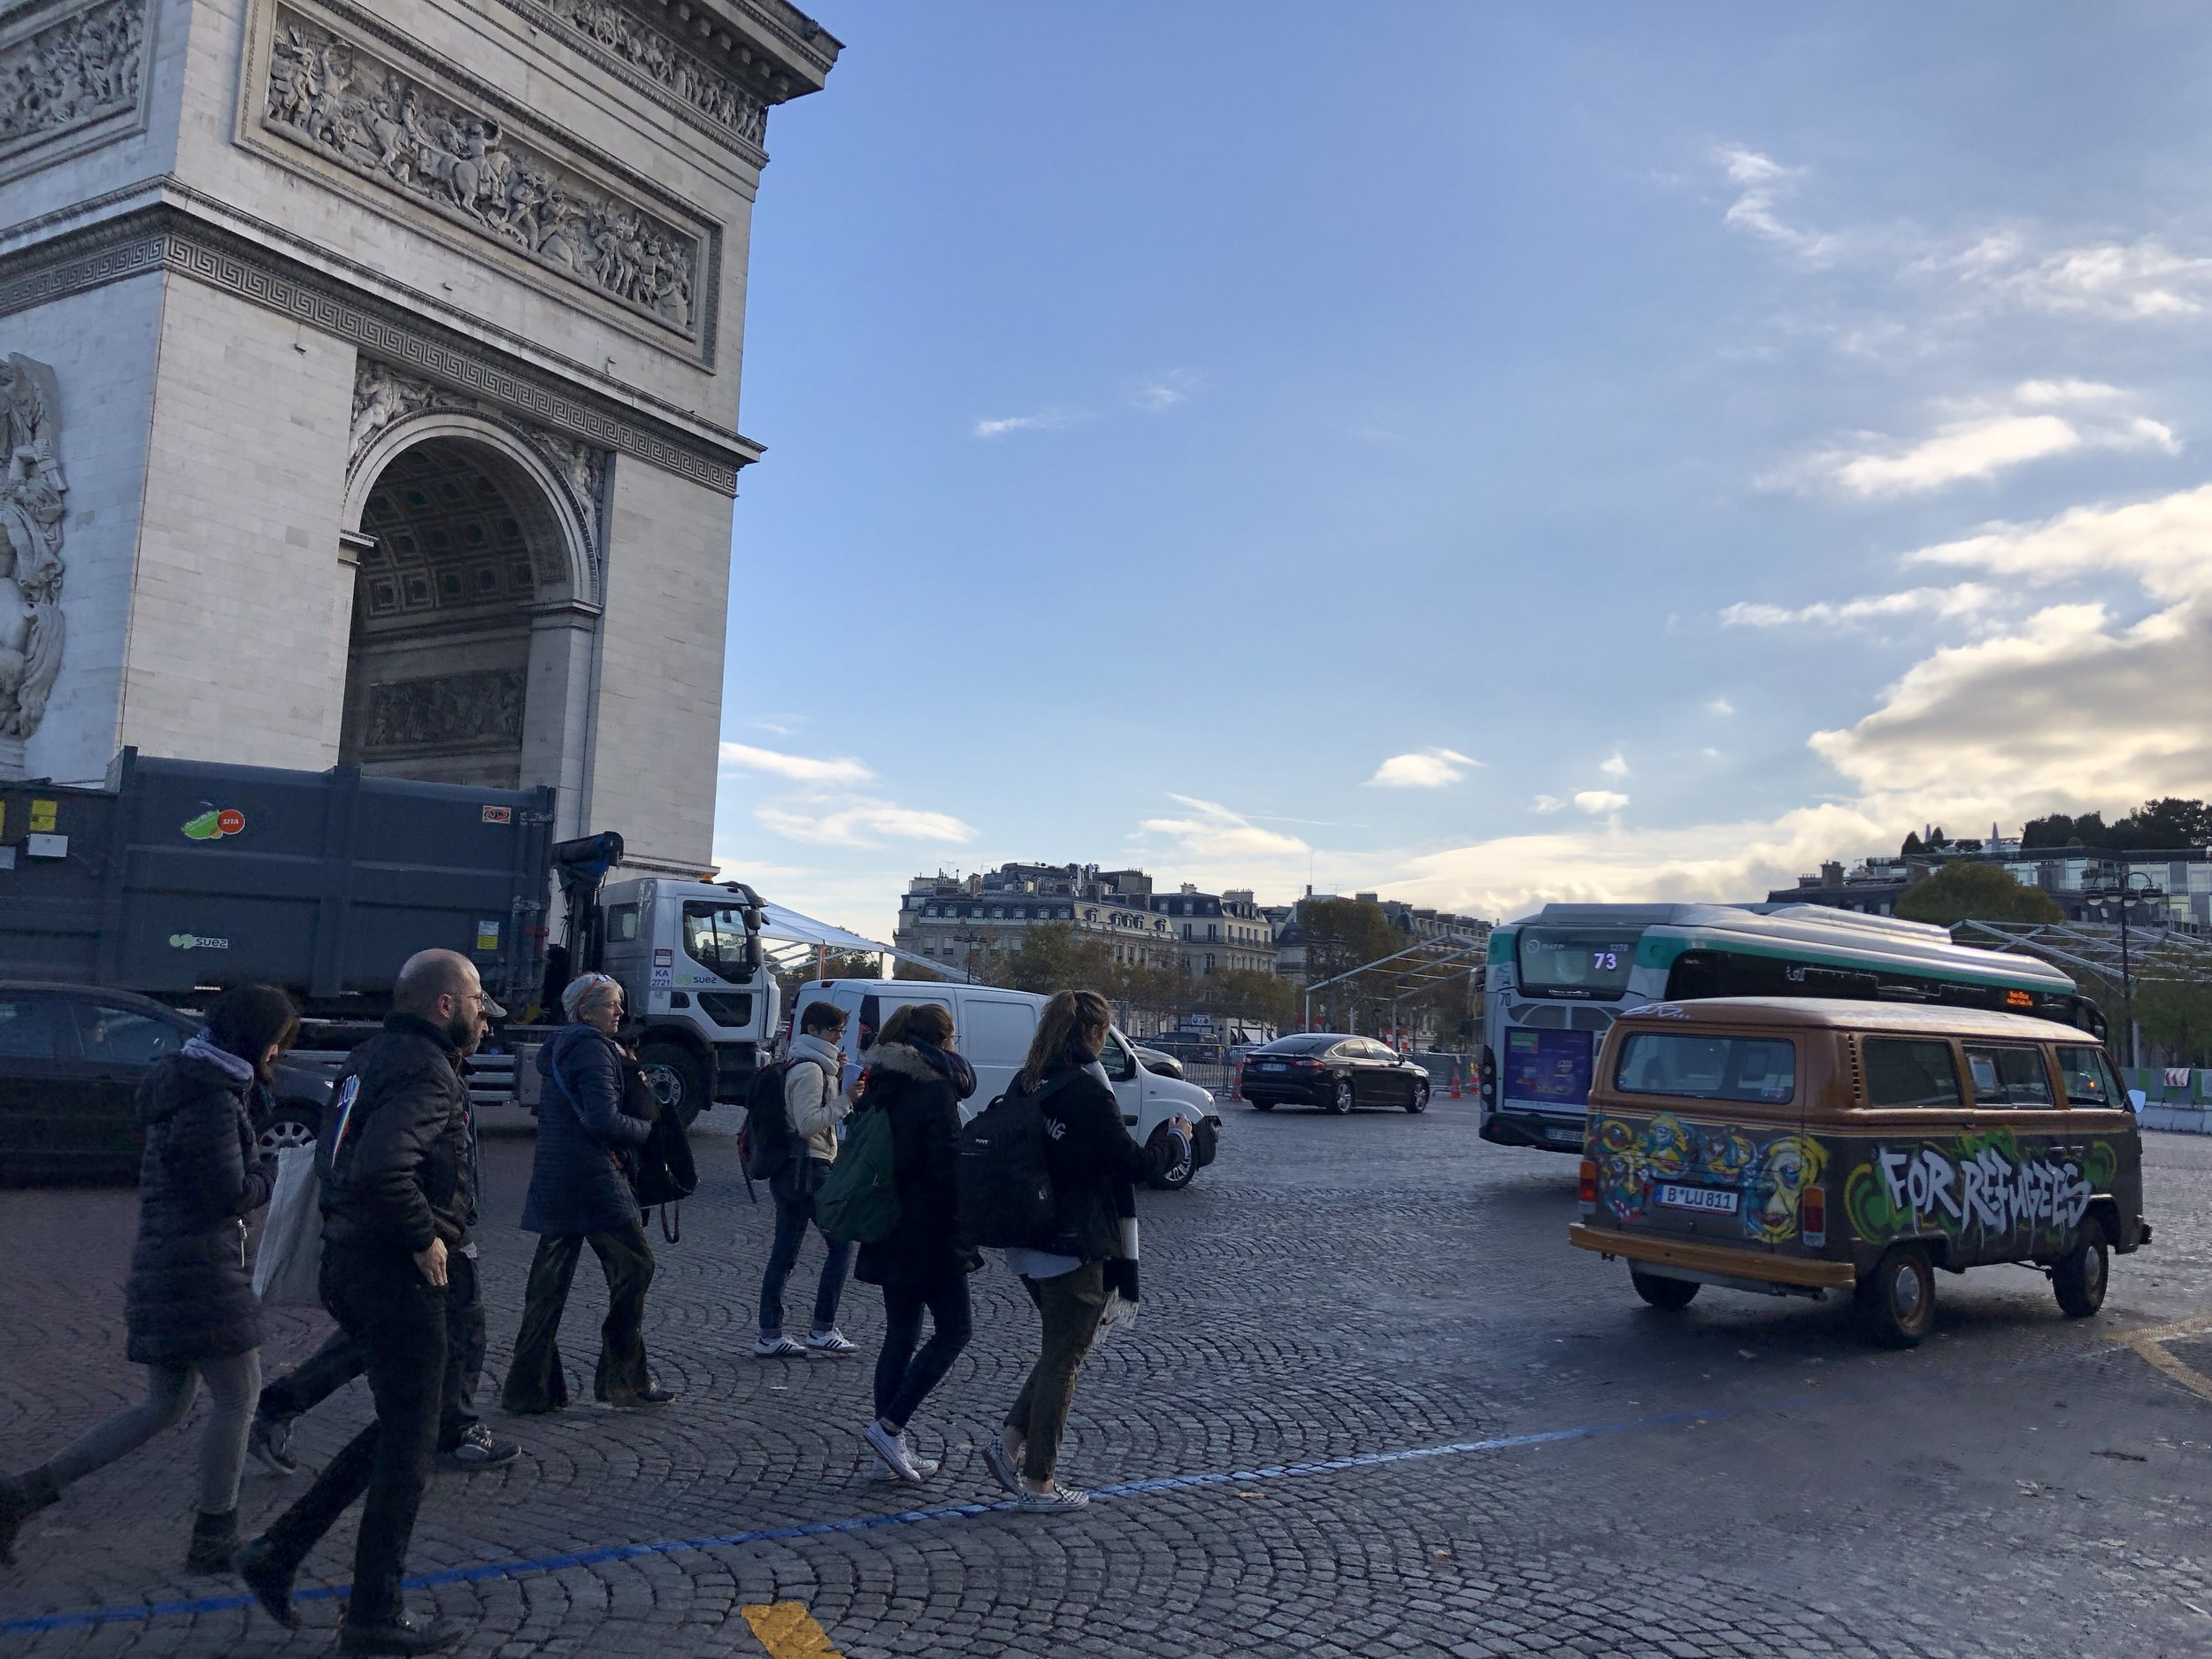 Friends at Arc de Triomphe with vw bus.JPG